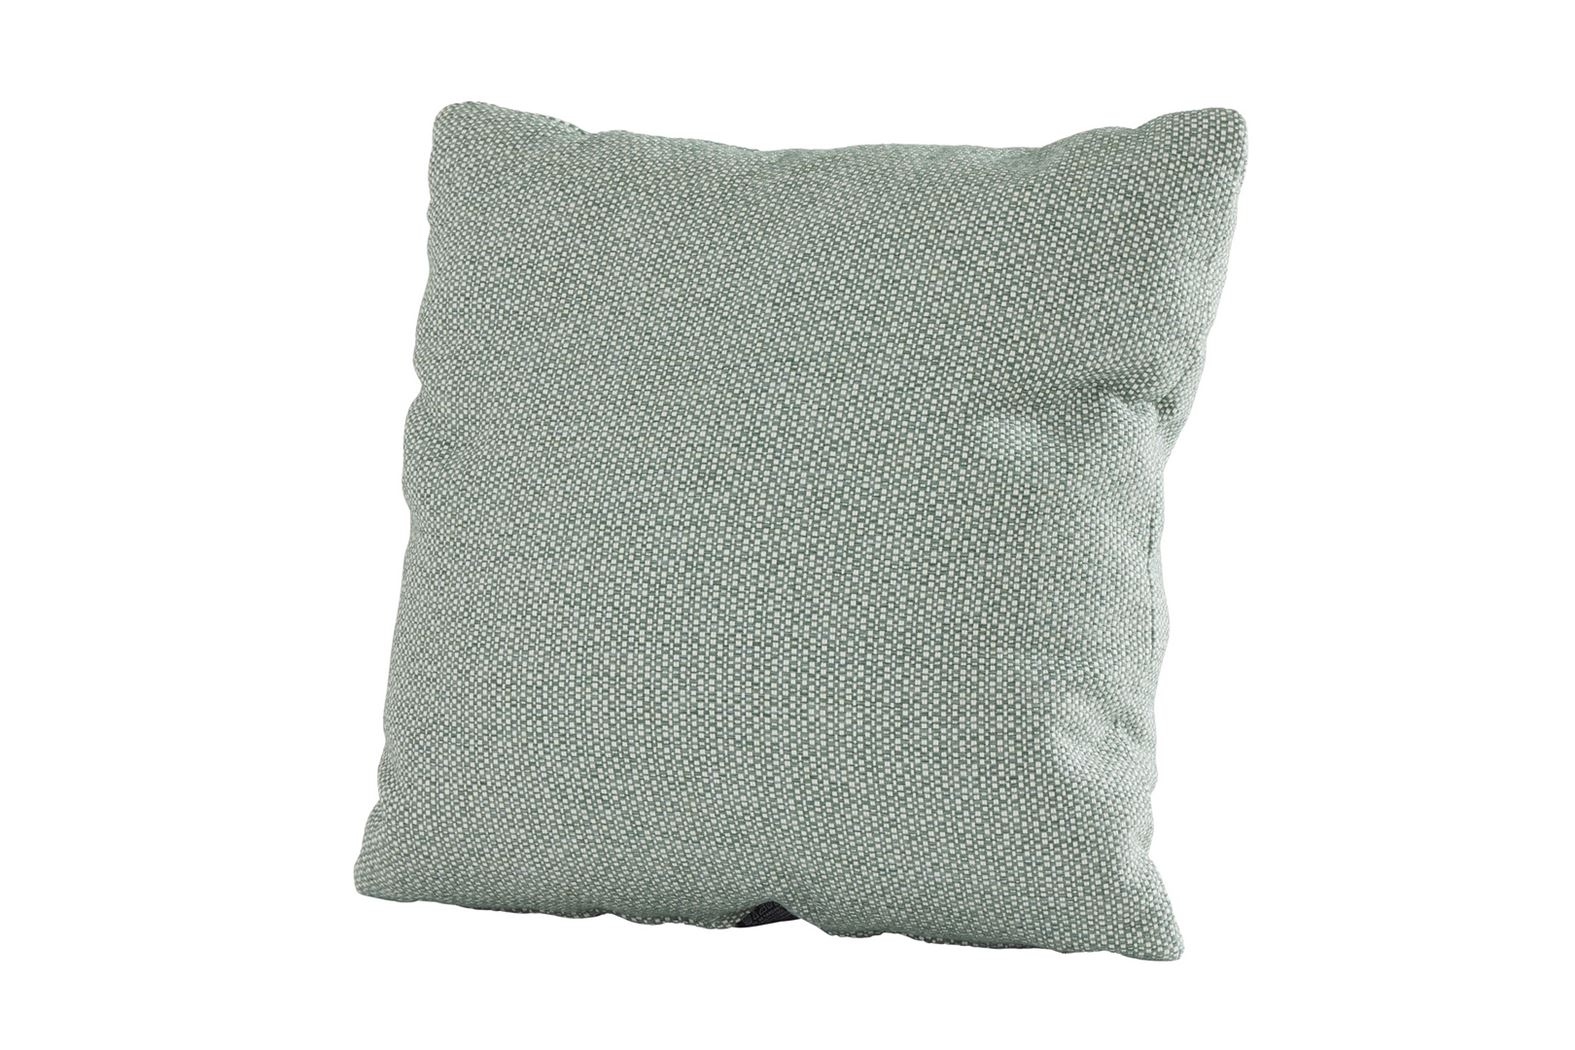 4so pillow with zipper fontalina green fontalina green